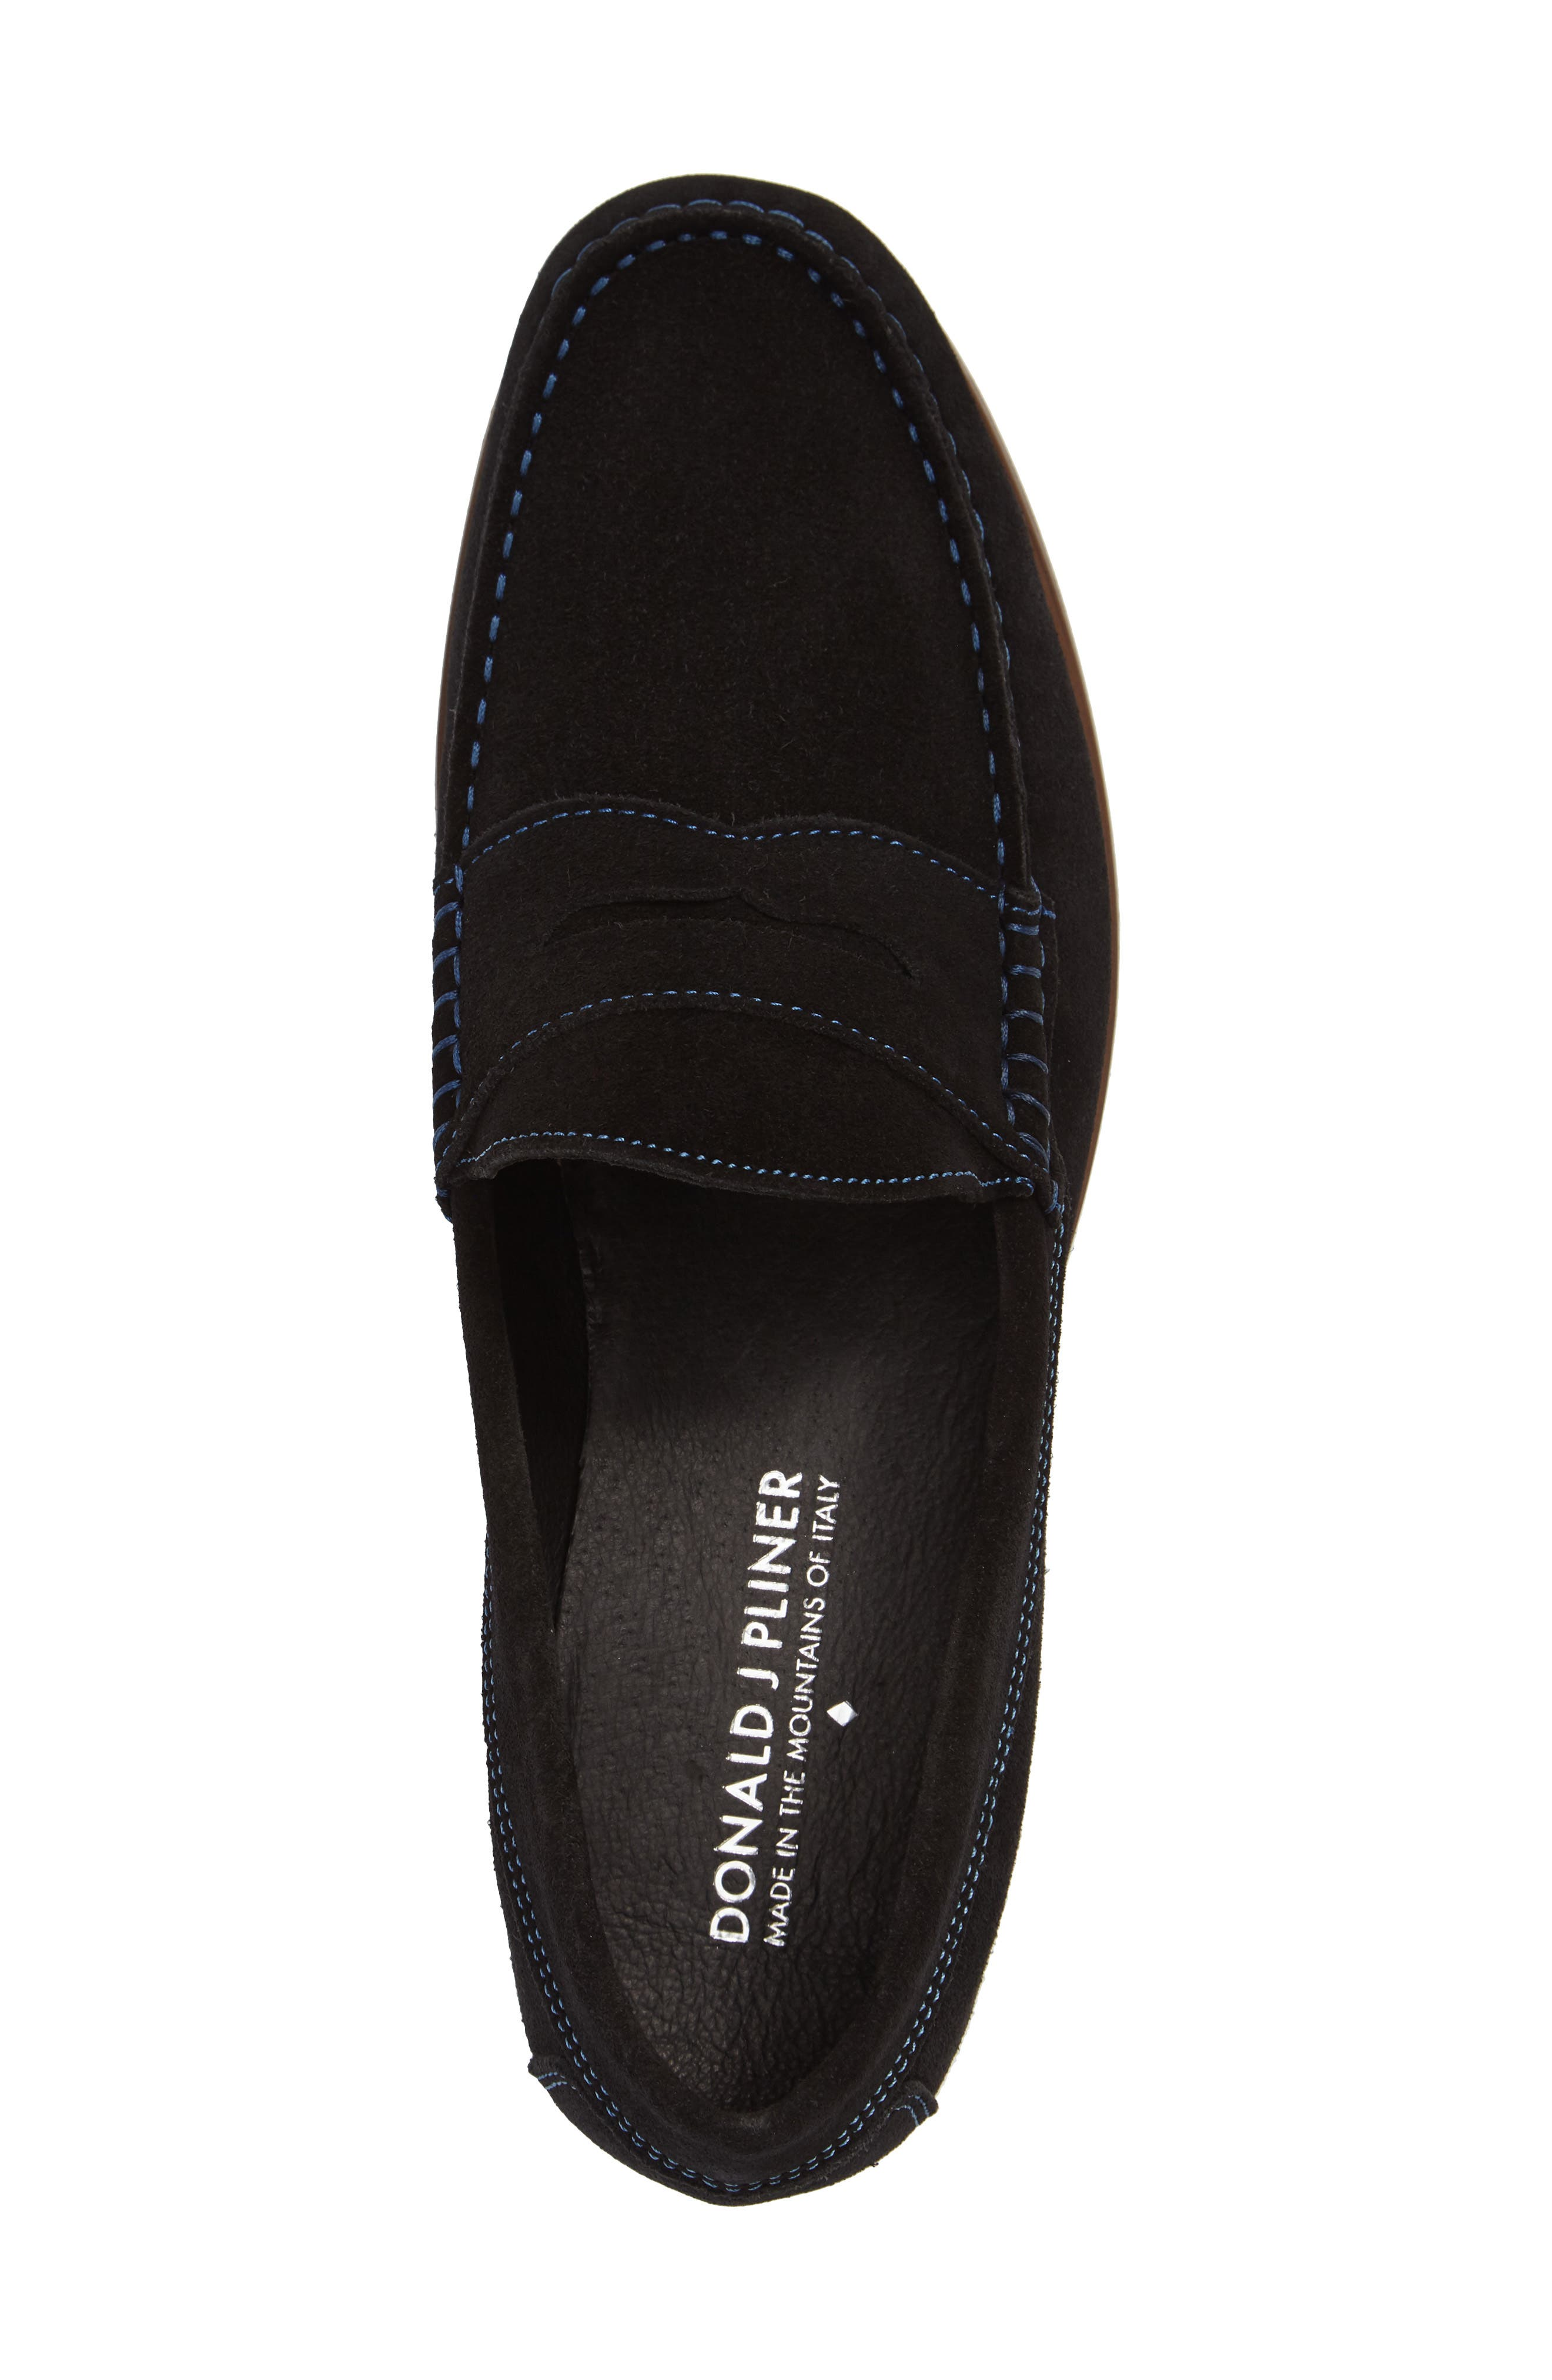 Nicola Penny Loafer,                             Alternate thumbnail 24, color,